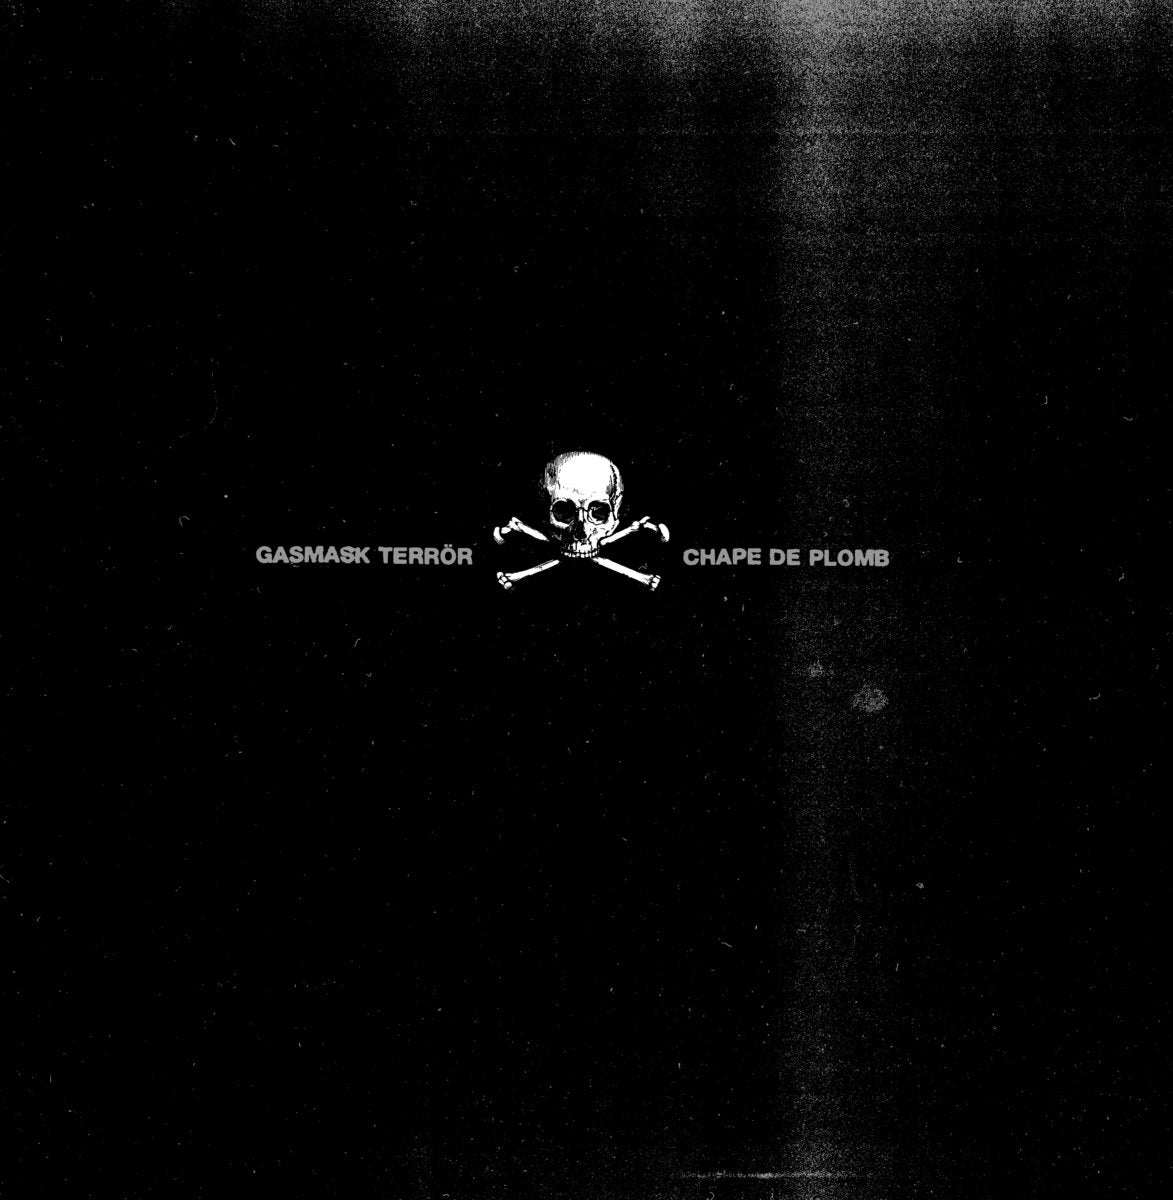 Gasmask Terror - Chape de Plomb LP (US press)